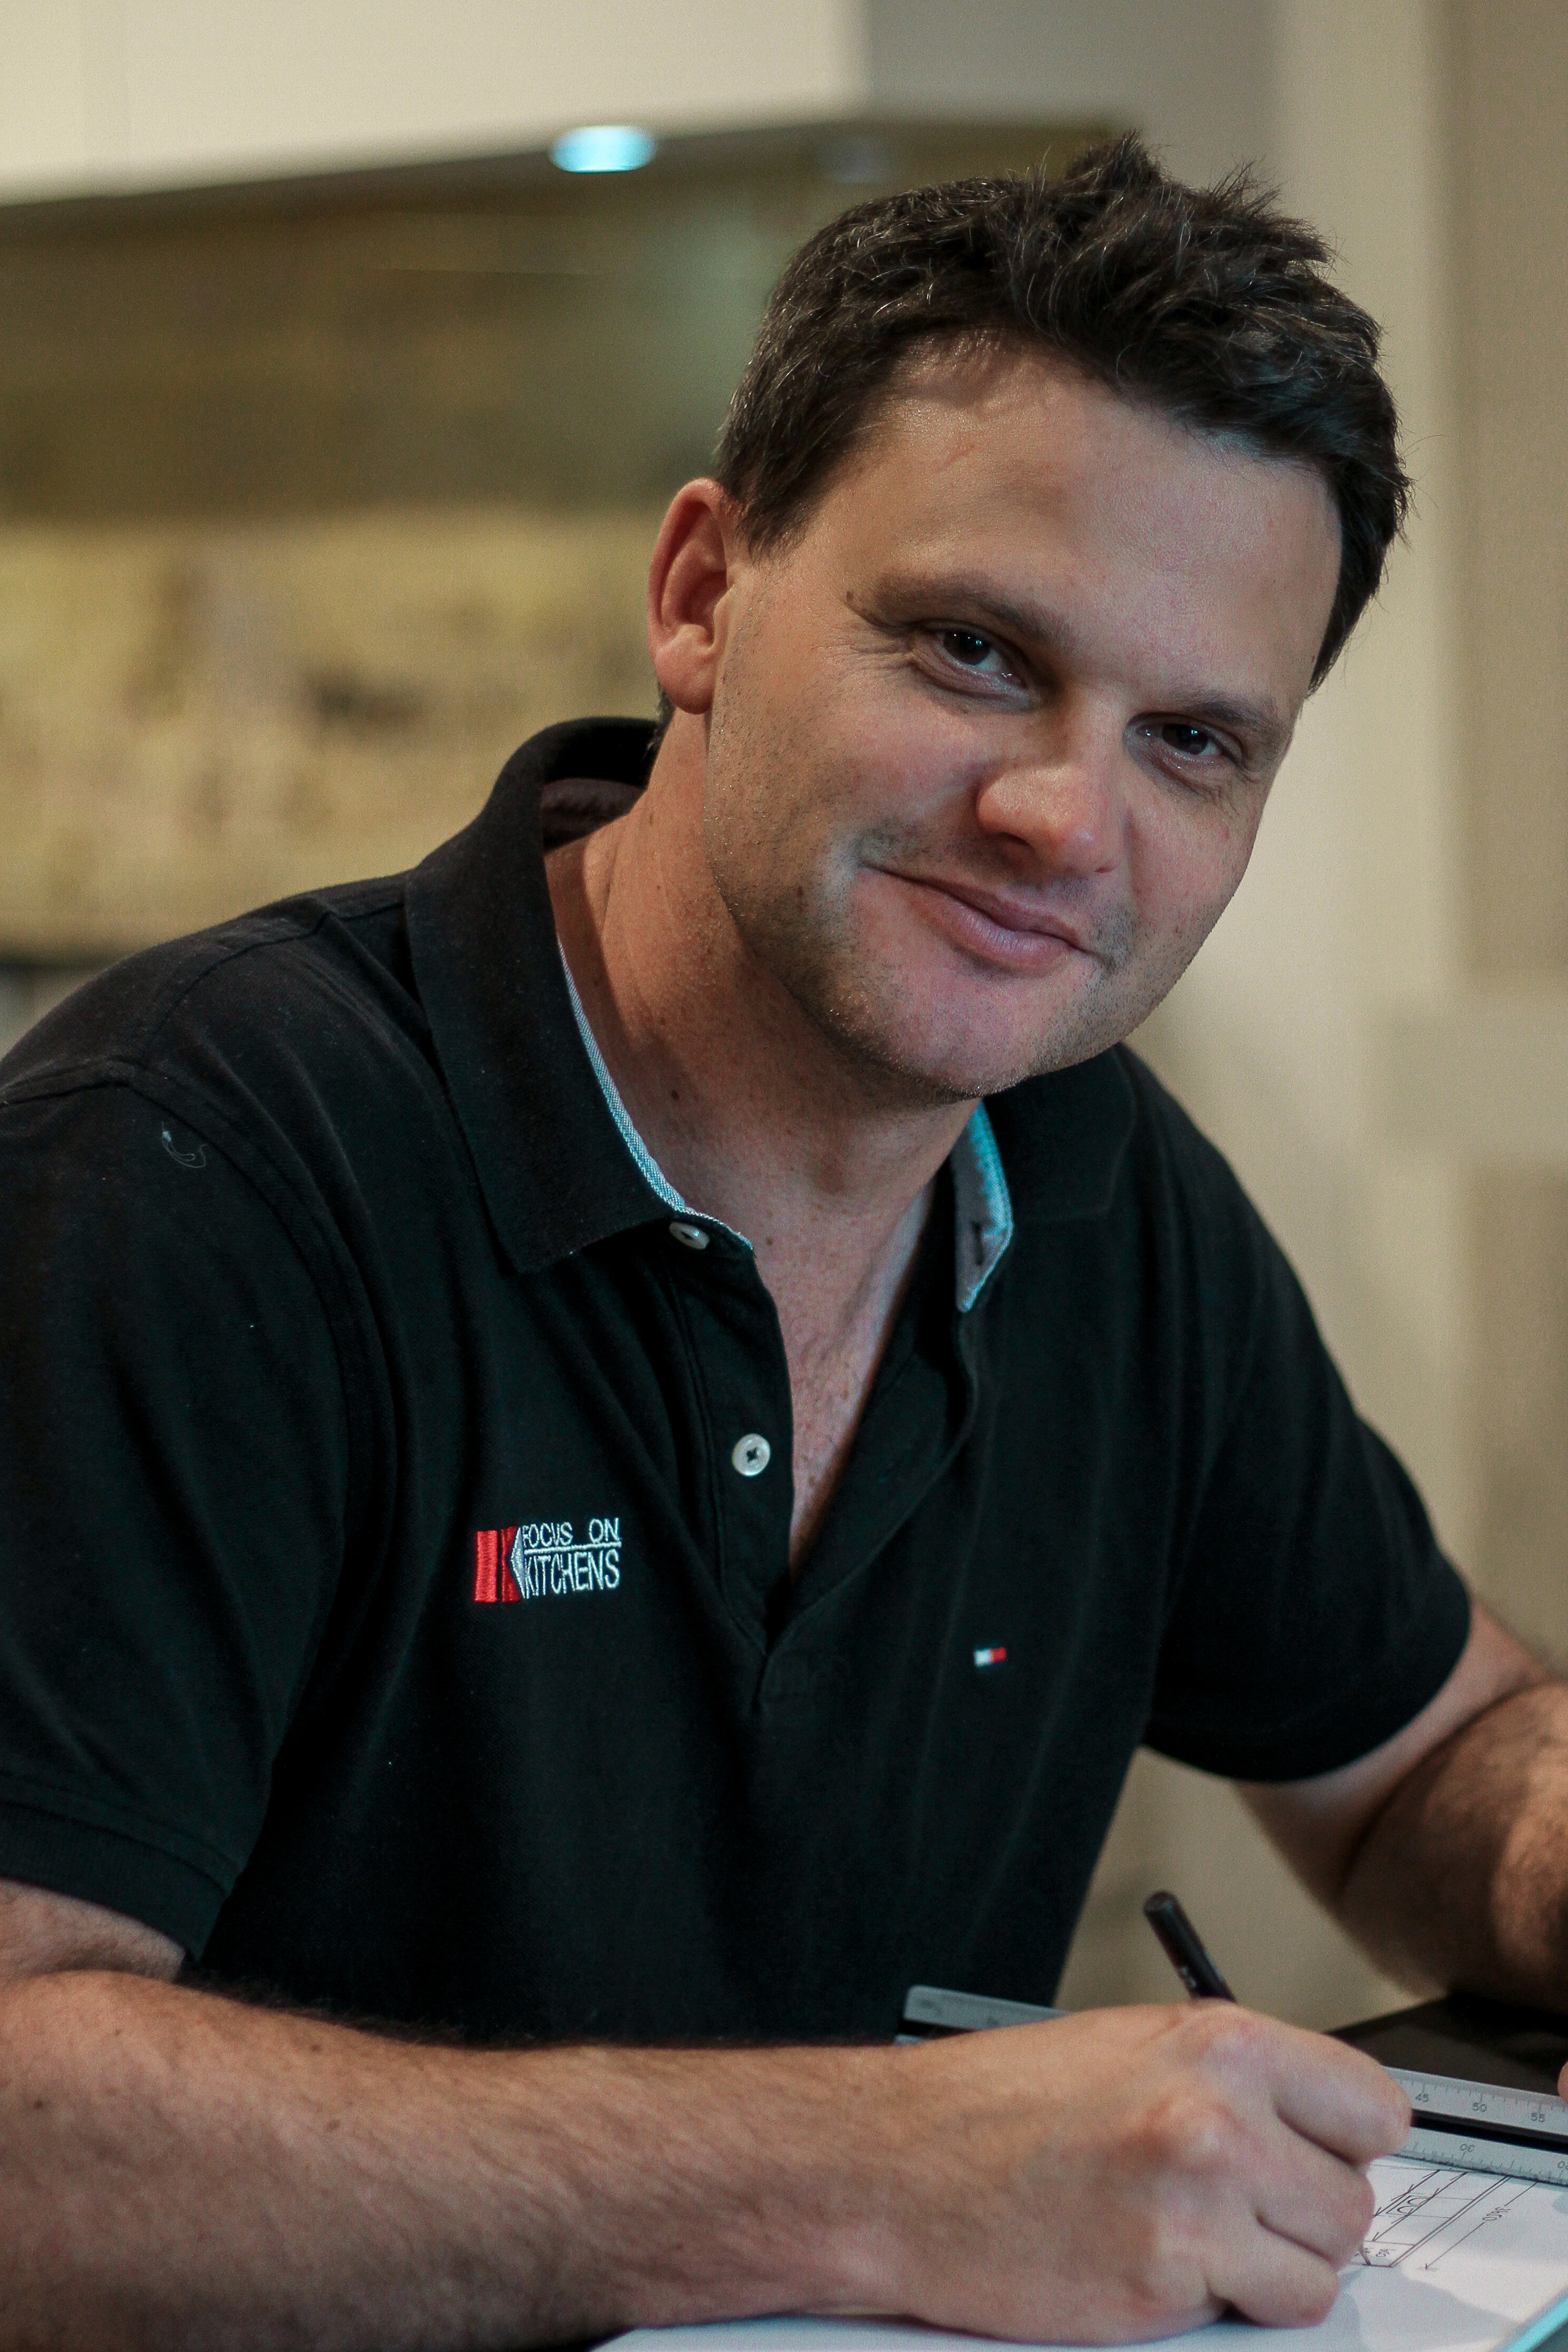 Craig Pukallus- Director - Owner & Co-Director Craig started his cabinet making career at Focus on Kitchens over 20 years ago. Craig will be one of your first contacts as he helps you with designing your new joinery. His main aim is to work closely with you, bringing your cabinetry visions to life.